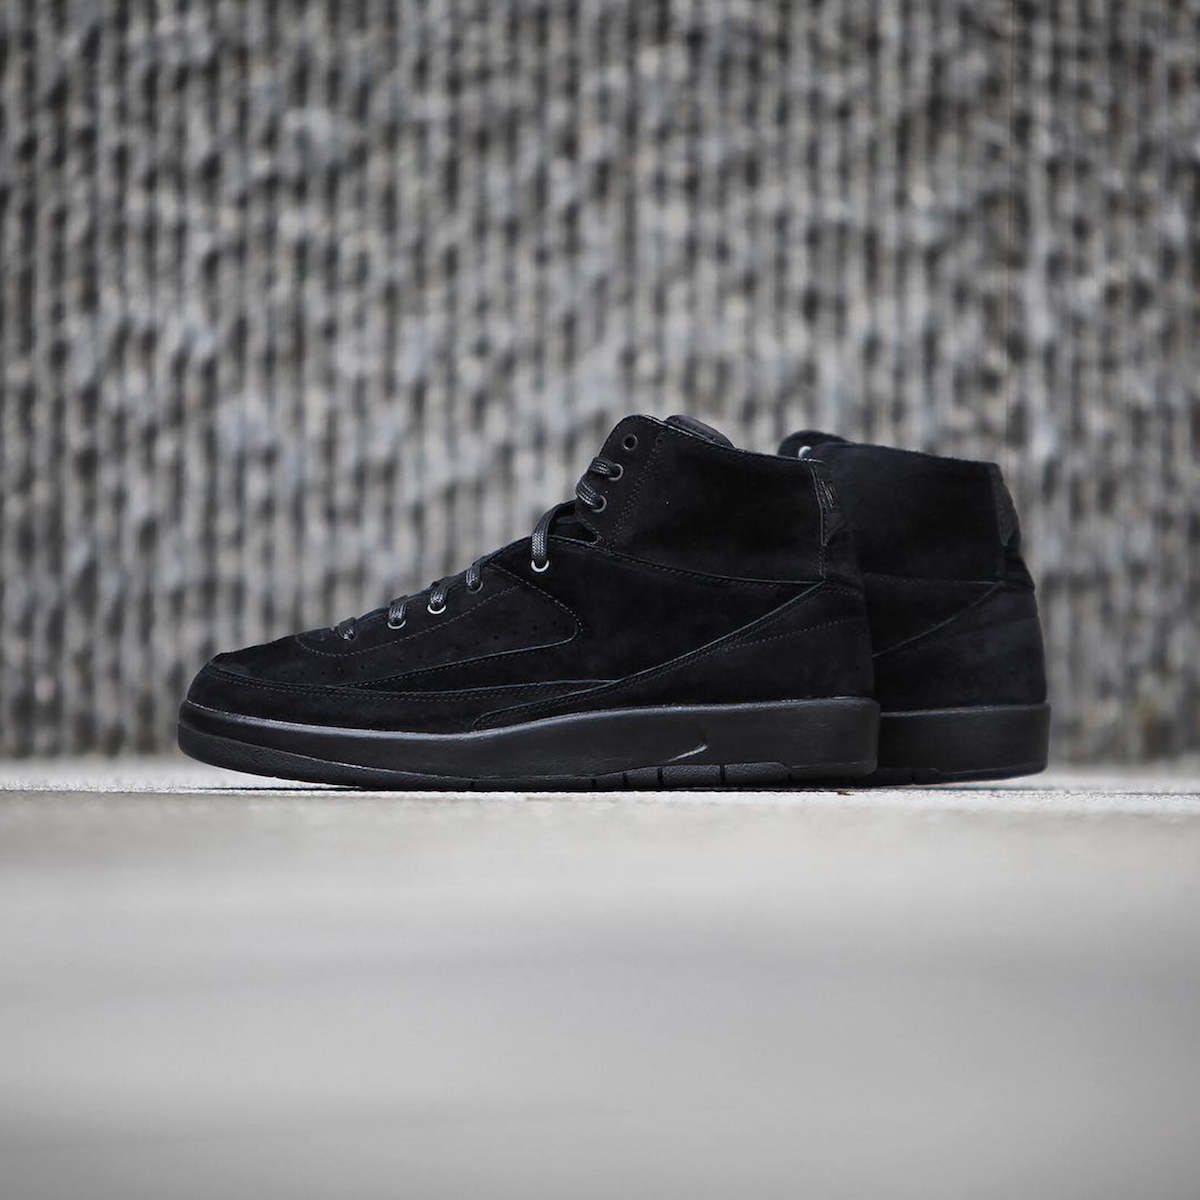 wholesale dealer 0b98f 0473c Up Close and Personal with the Air Jordan II Decon - WearTesters